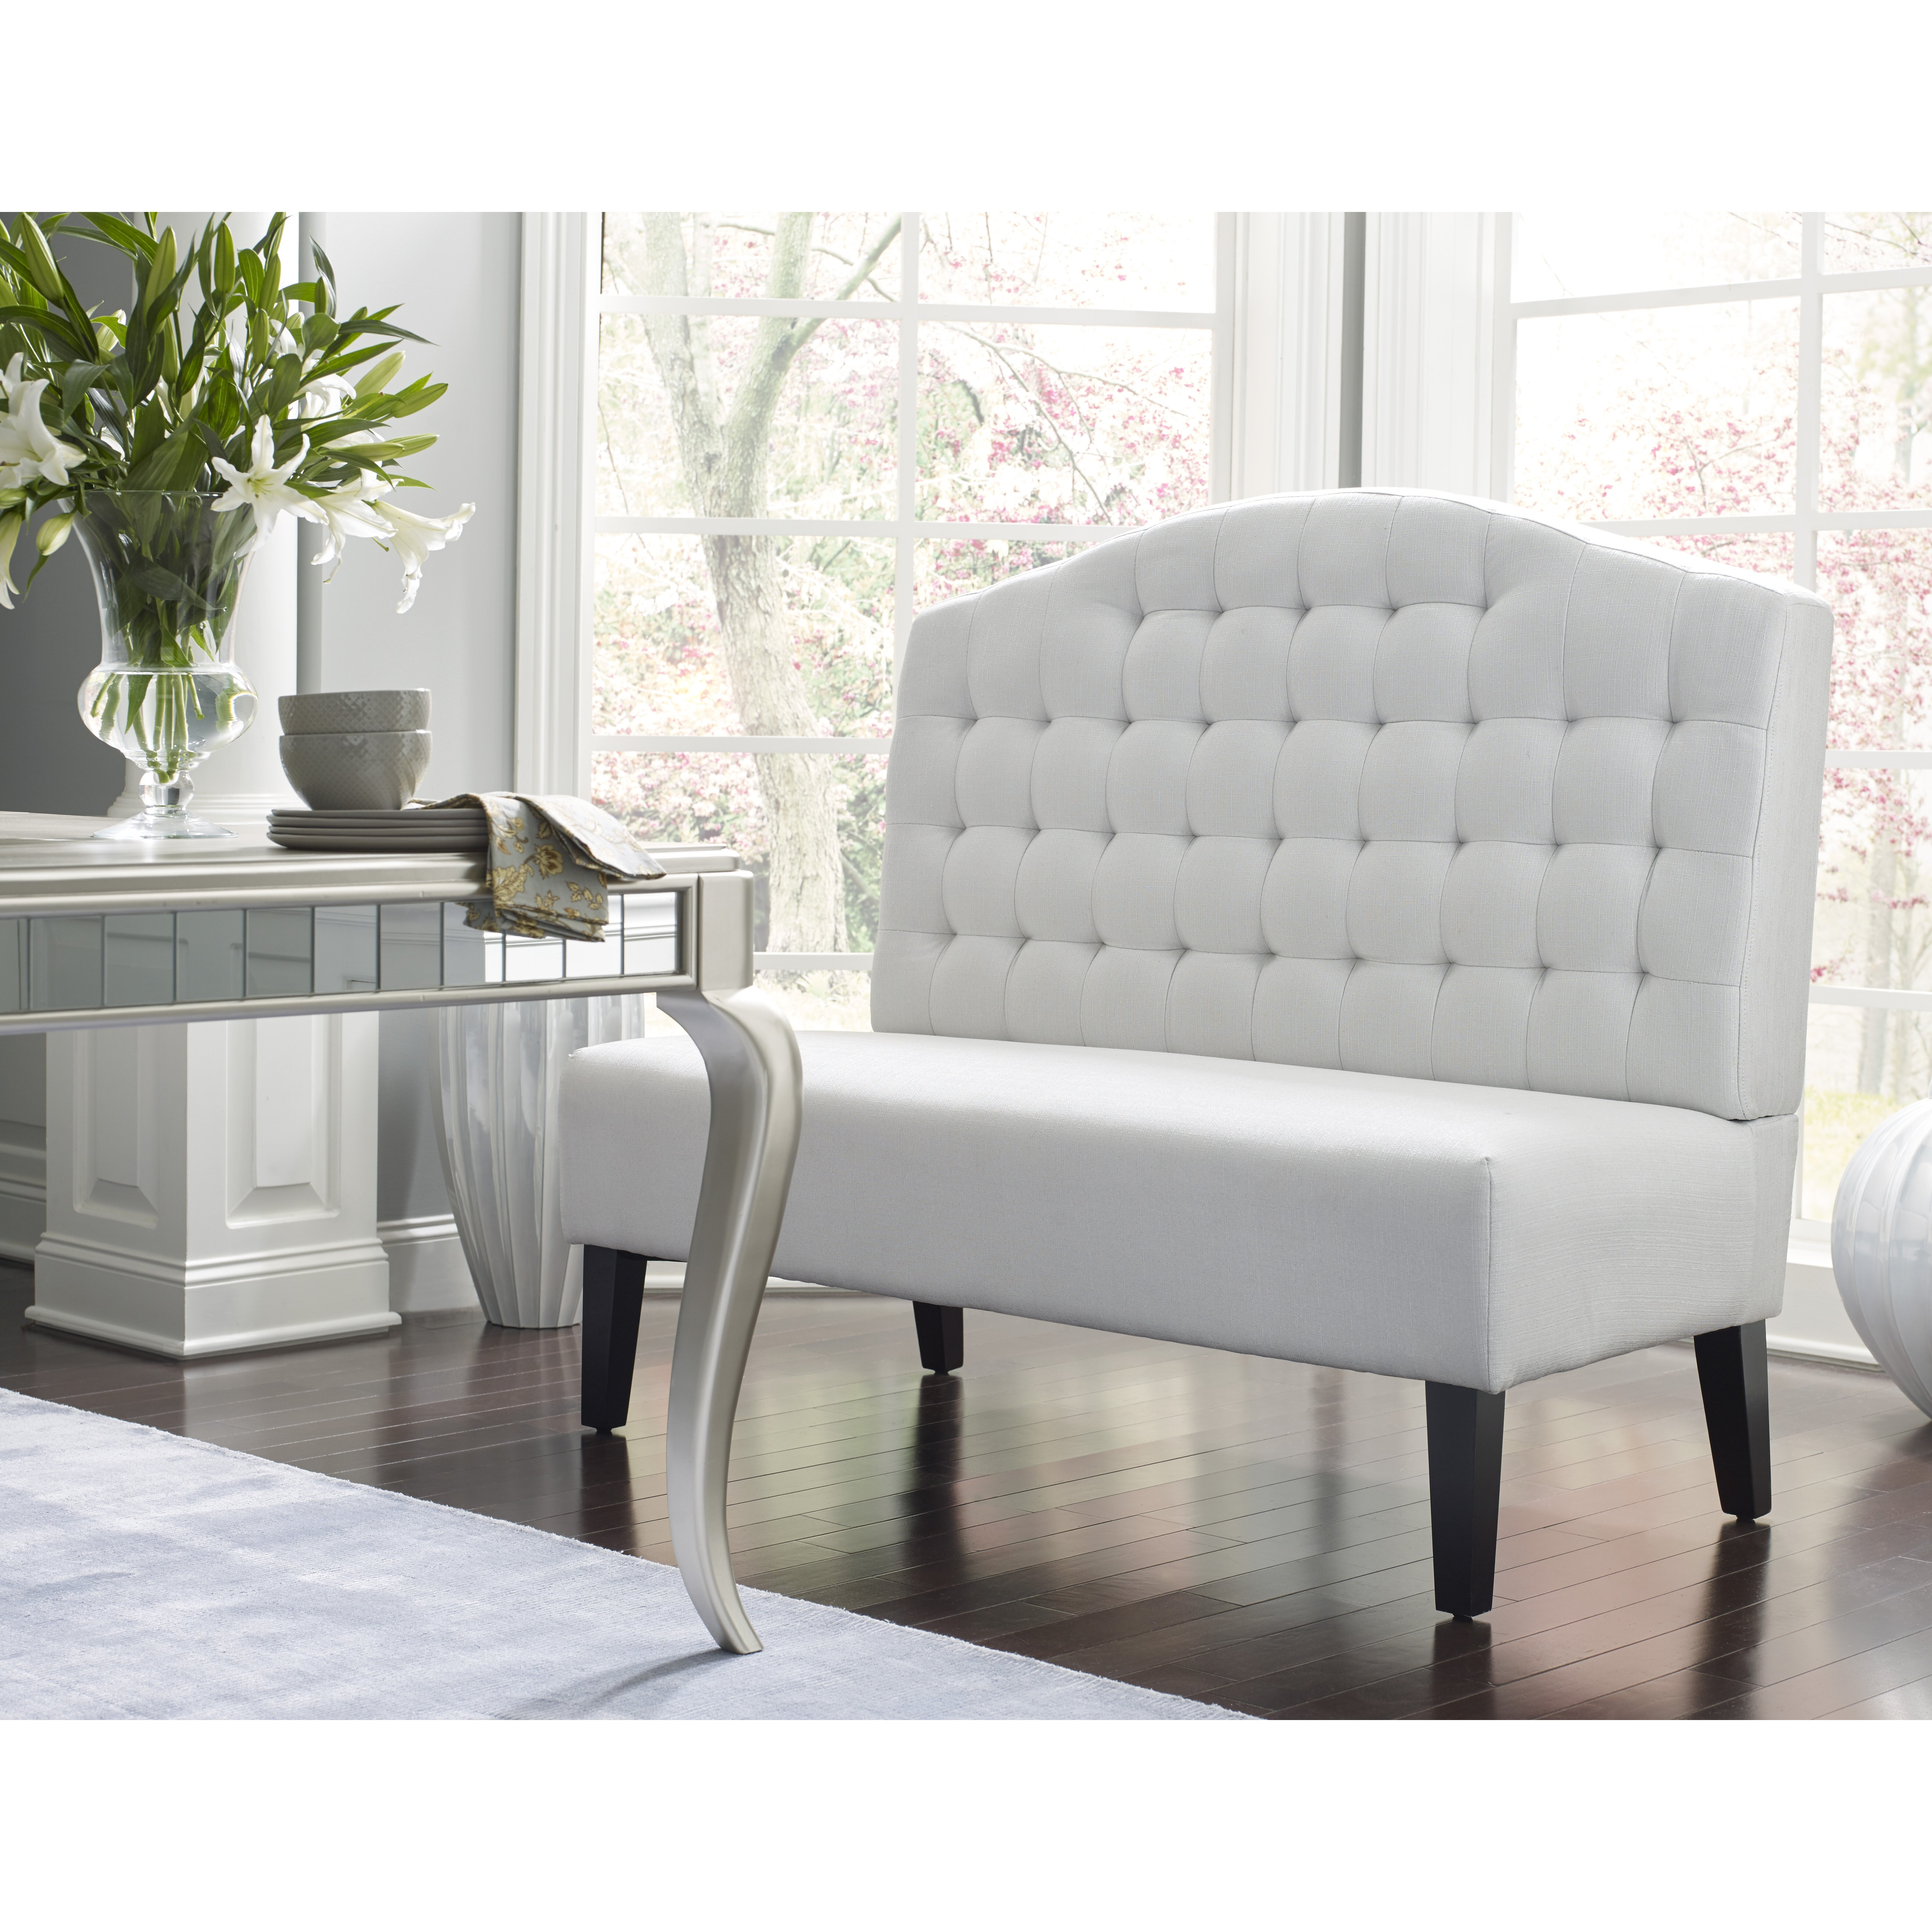 House Of Hampton Galkhai Upholstered Bedroom Bench Reviews Wayfair